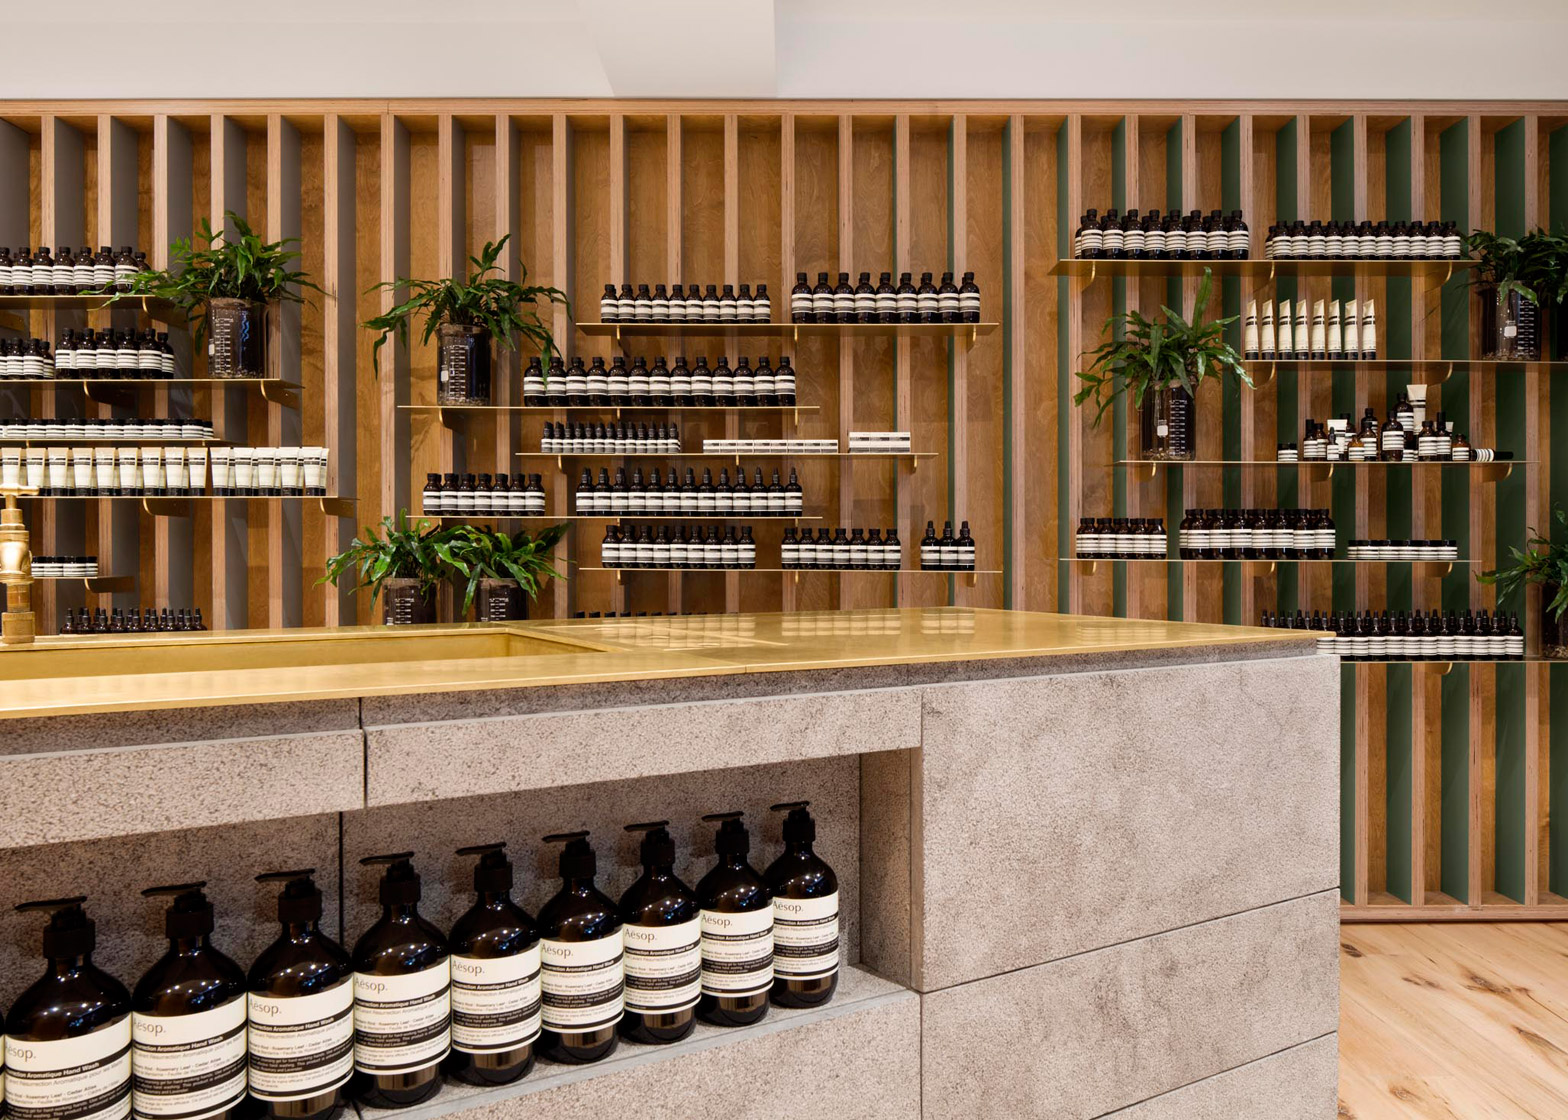 Aesop Mile-end by Naturehumaine